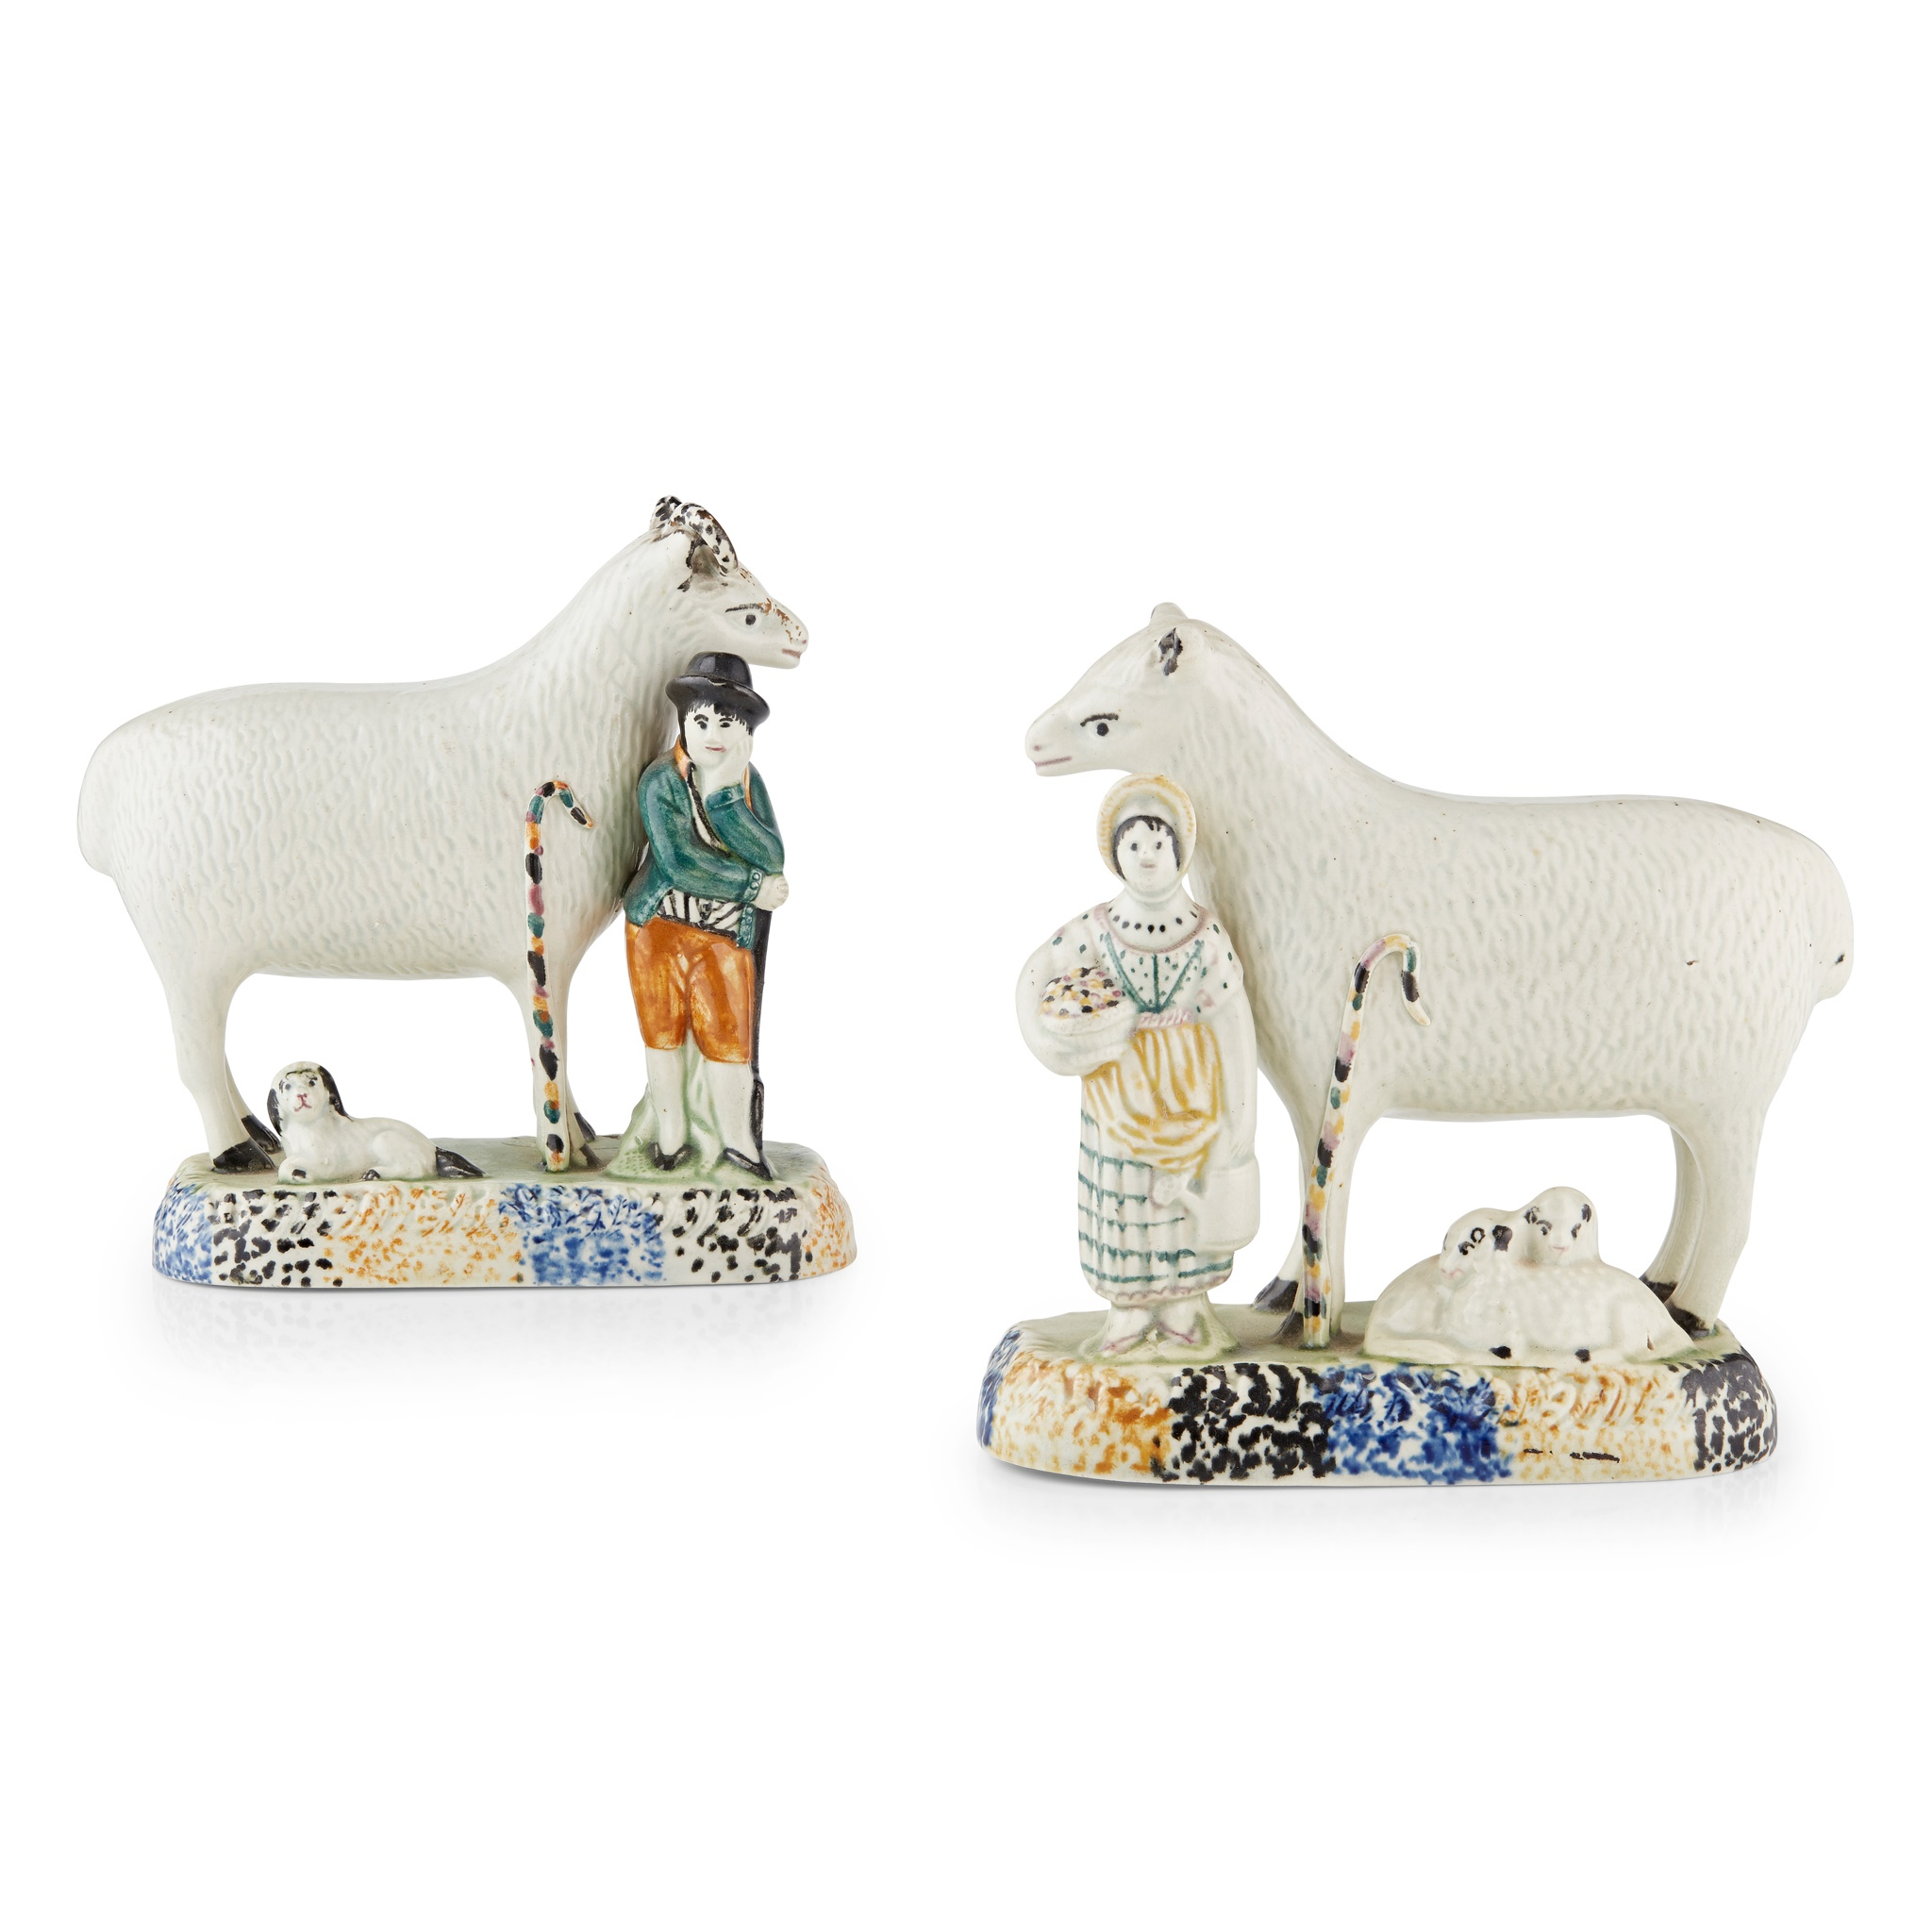 PAIR OF YORKSHIRE PEARLWARE FIGURES OF A RAM AND A SHEEP CIRCA 1820